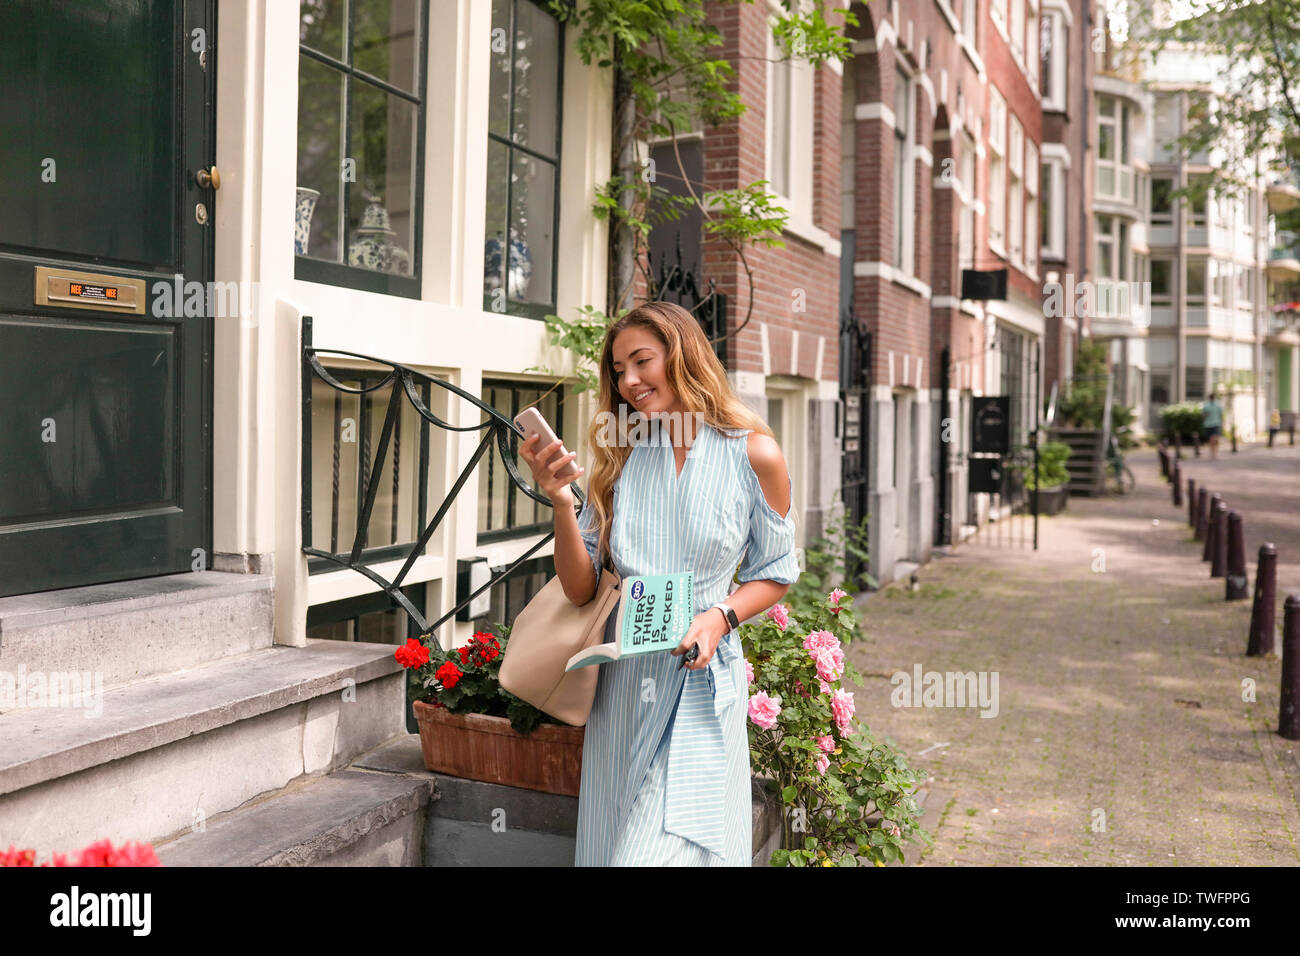 Sexy girl walking alone on the colorful european streets. Holding a phone in her hand and smiling, book in another hand. Stylish blue dress and pink Stock Photo